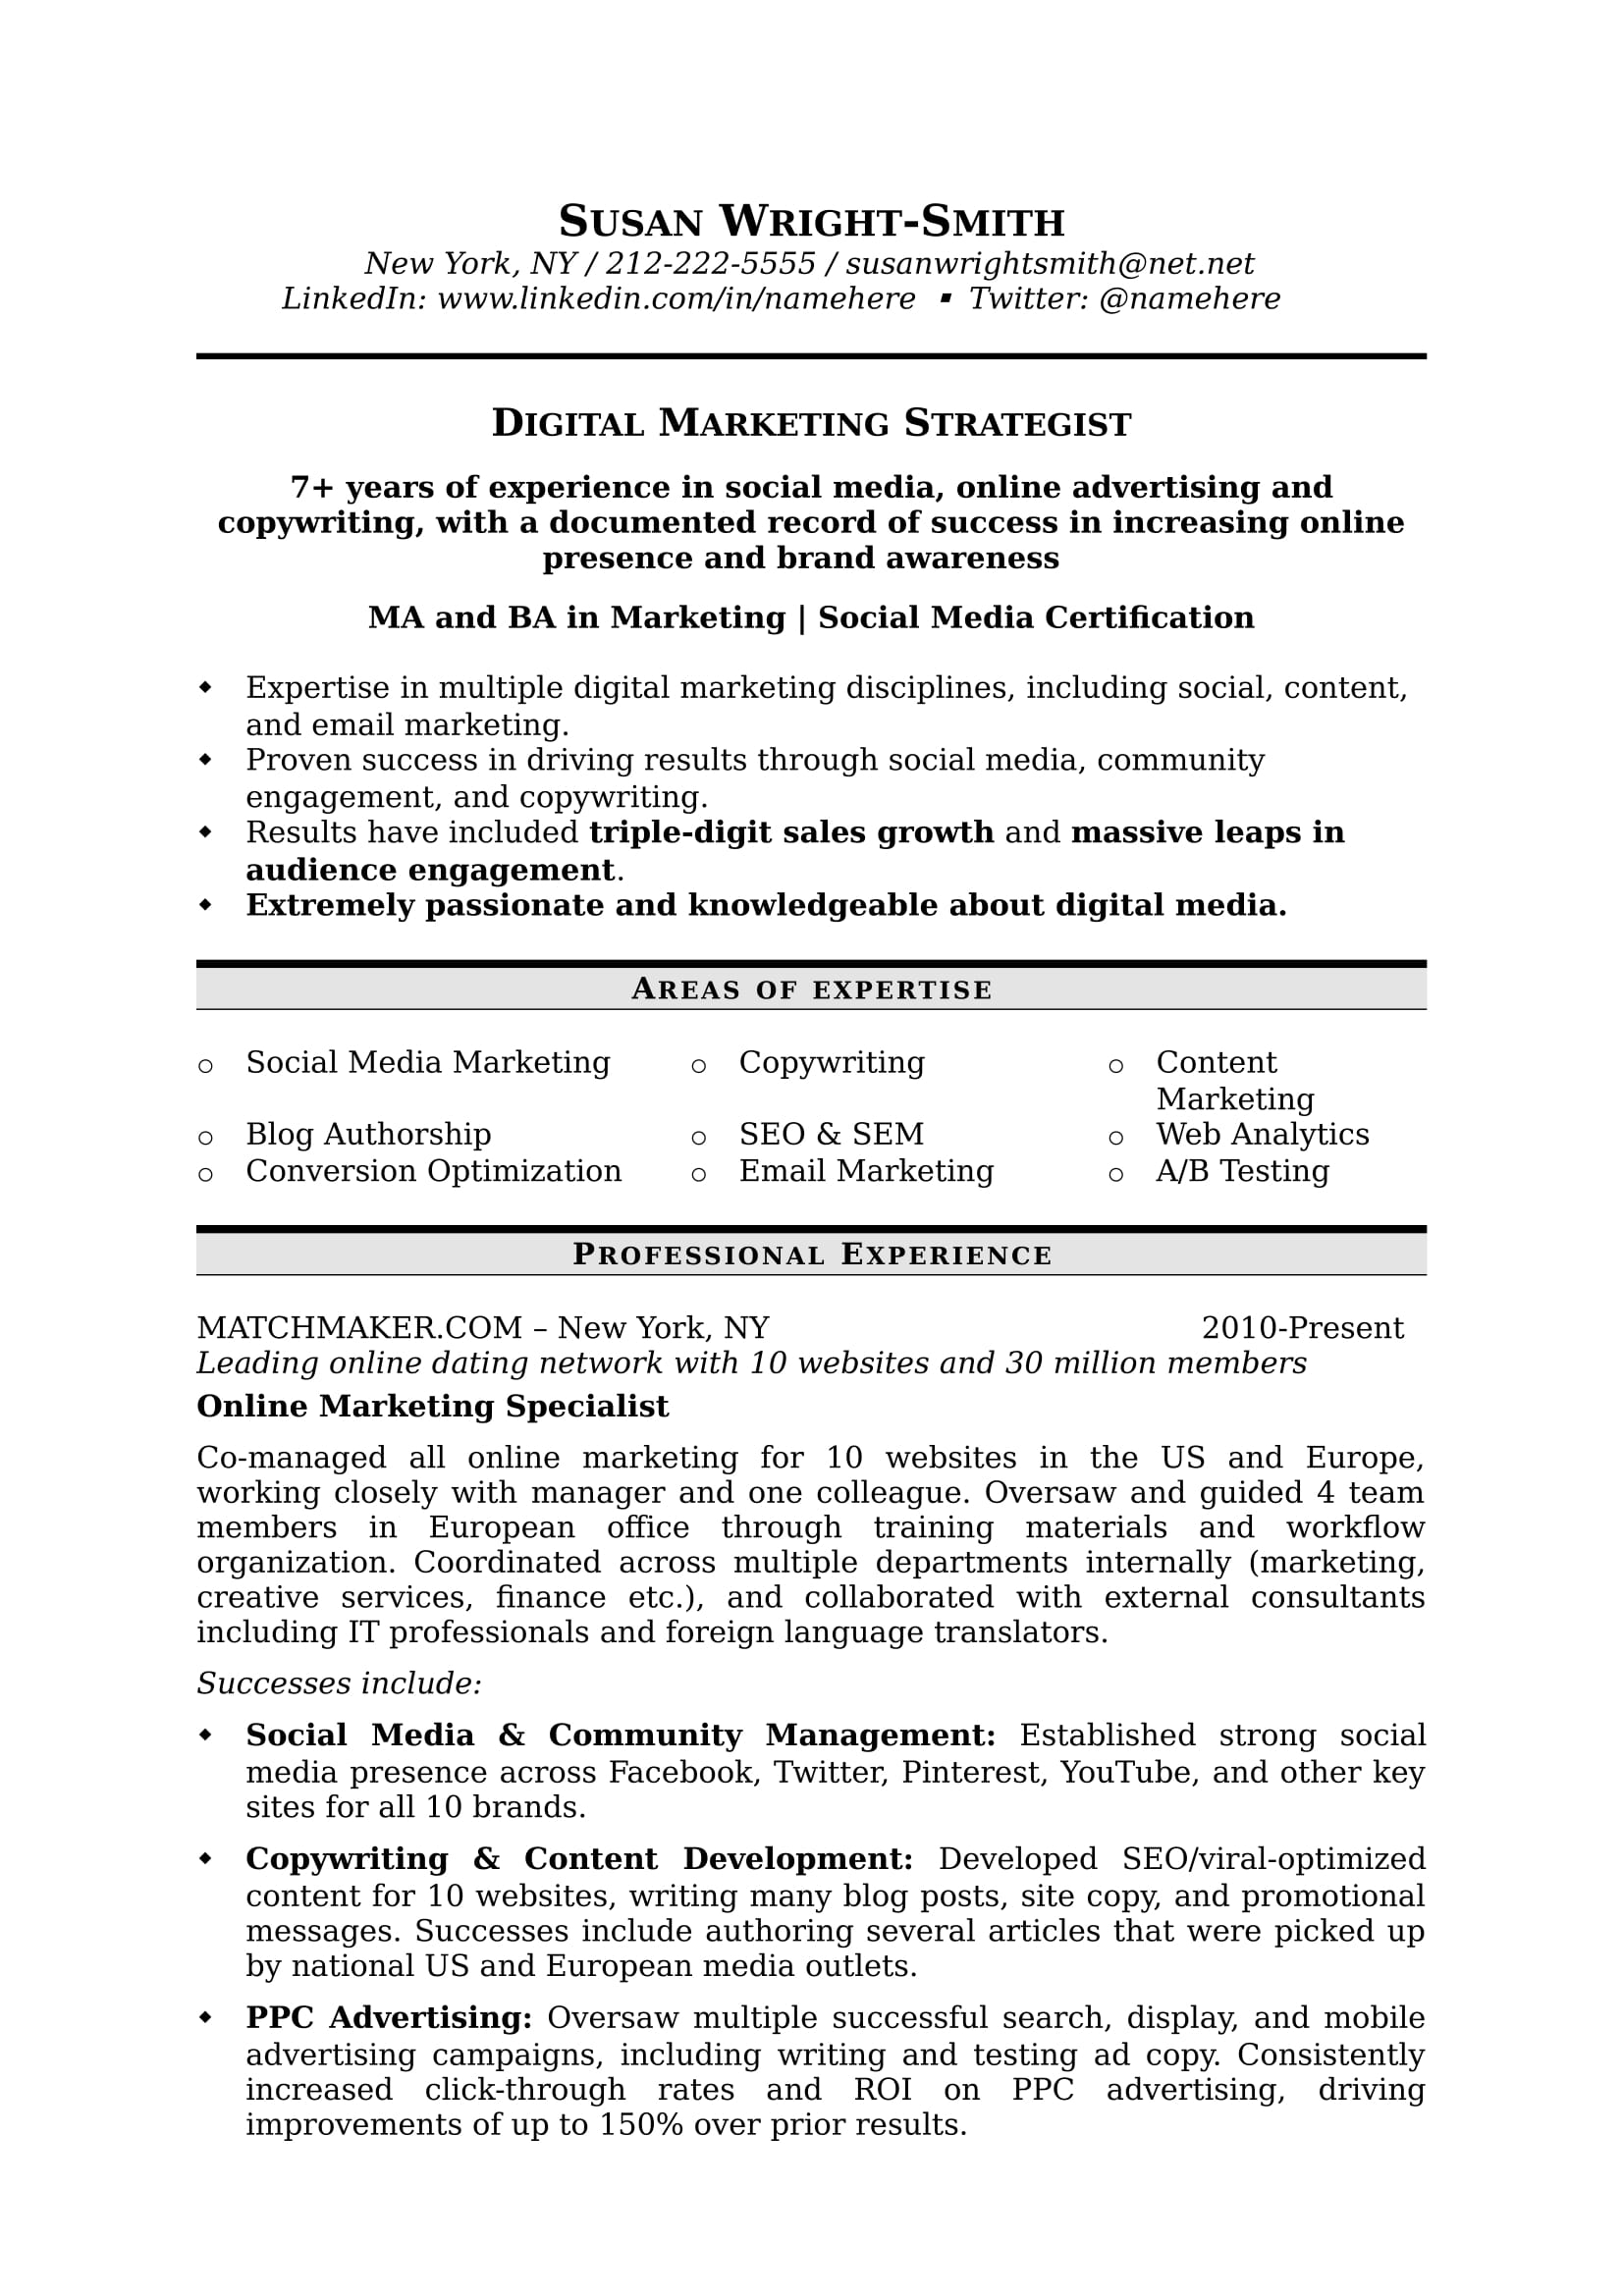 Marketing Manager Cover Letter  Marketing Resume Samples Hiring